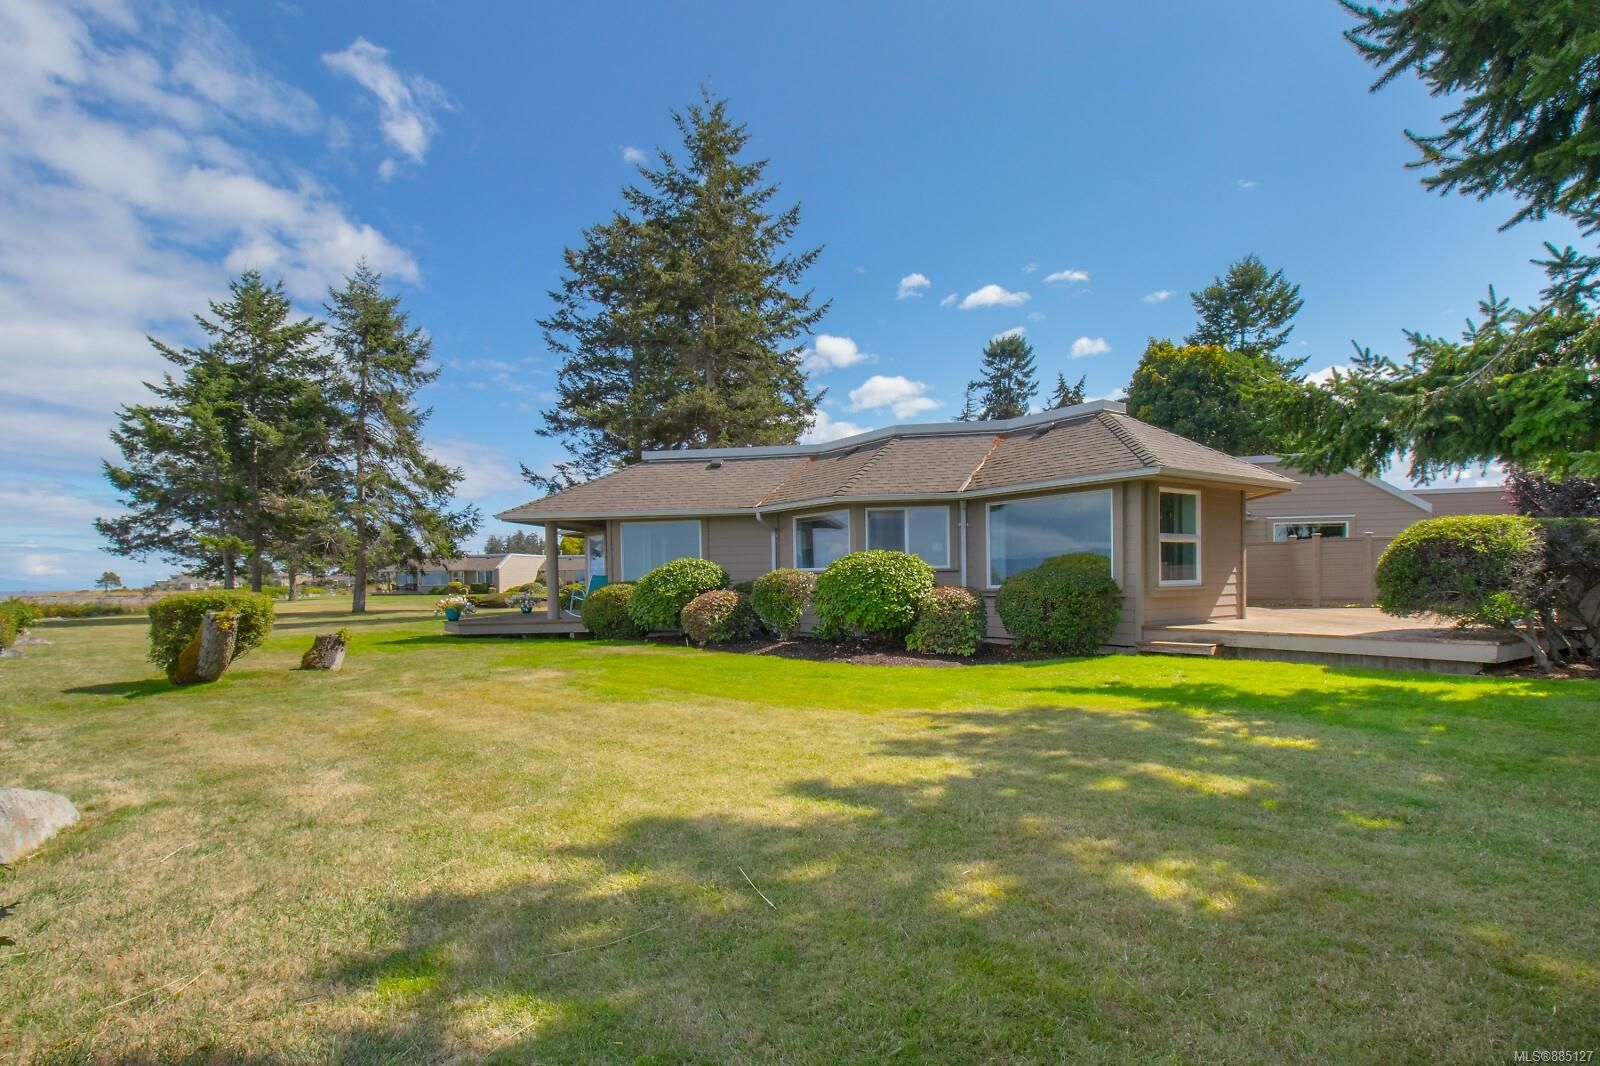 Photo 47: Photos: 26 529 Johnstone Rd in : PQ French Creek Row/Townhouse for sale (Parksville/Qualicum)  : MLS®# 885127